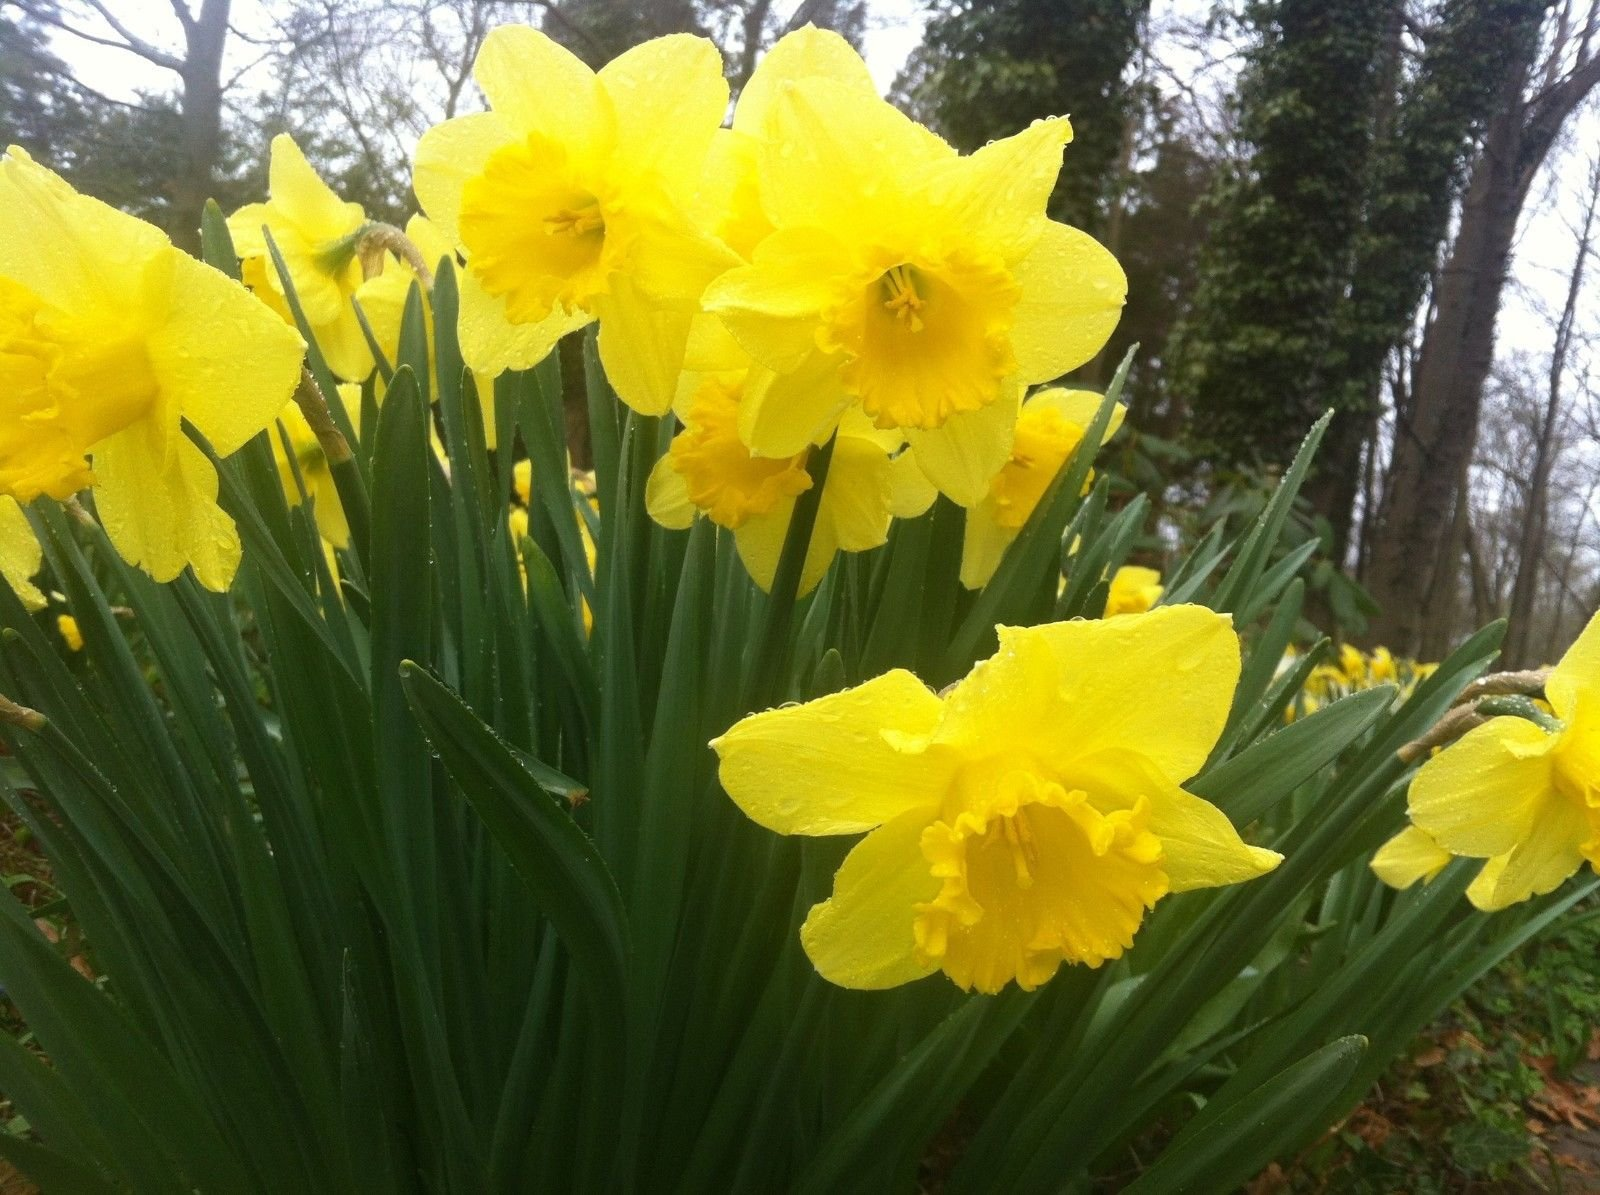 100 Wild Daffodil Flower Bulbs (Narcissus Pseudonarcissus)